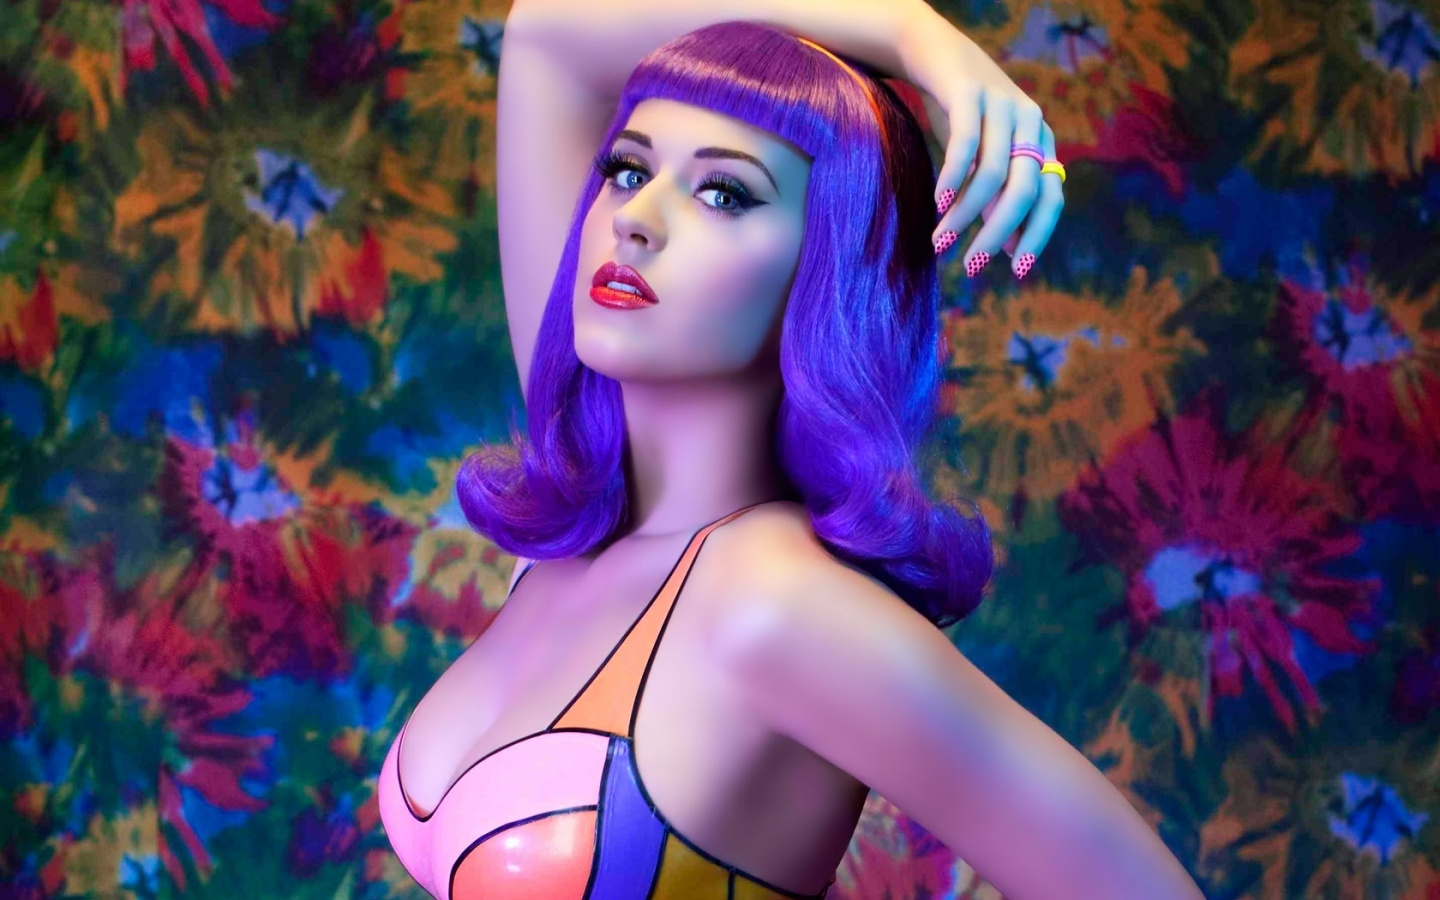 Katy Perry New HD Wallpapers 2012 ~ HOT CELEBRITY: Emma Stone